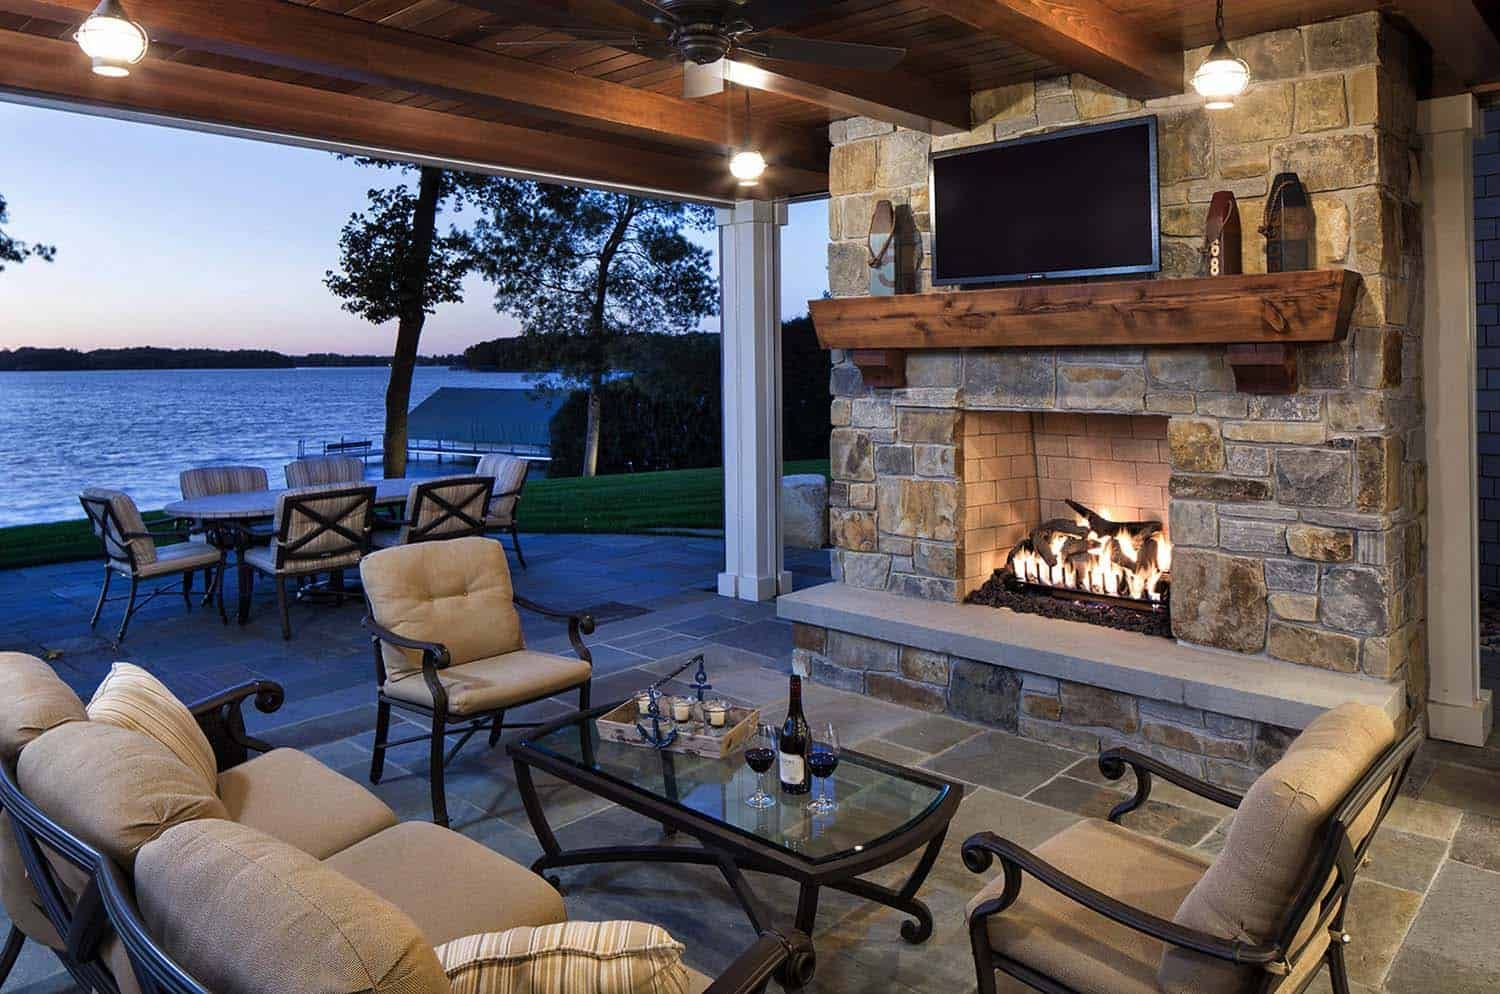 38 Fabulous Ideas For Creating Beautiful Outdoor Living Spaces Beautiful Outdoor Living Spaces Outdoor Living Areas Outdoor Living Space Outdoor patio living spaces